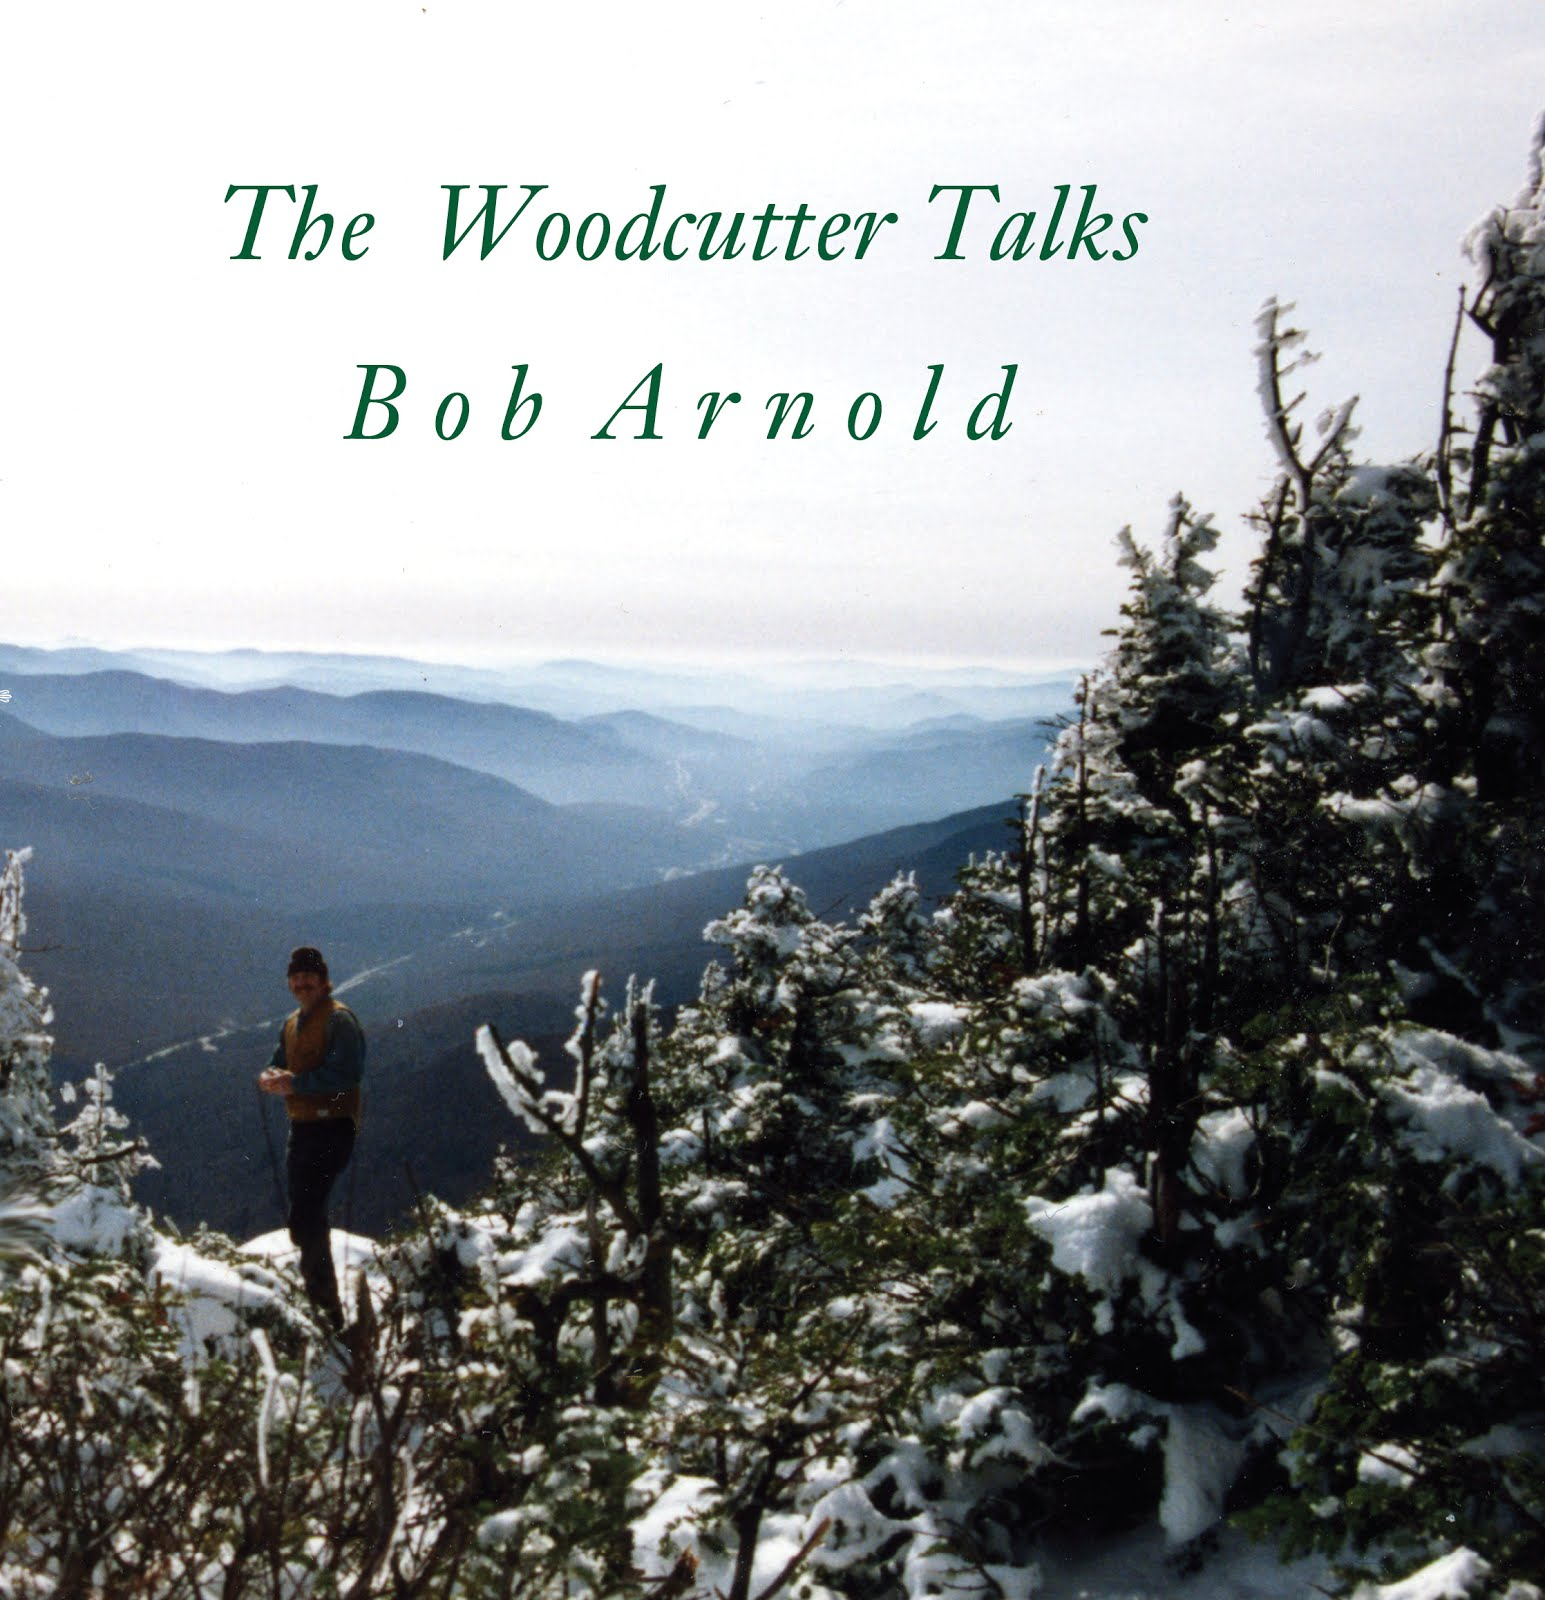 The Woodcutter Talks by Bob Arnold